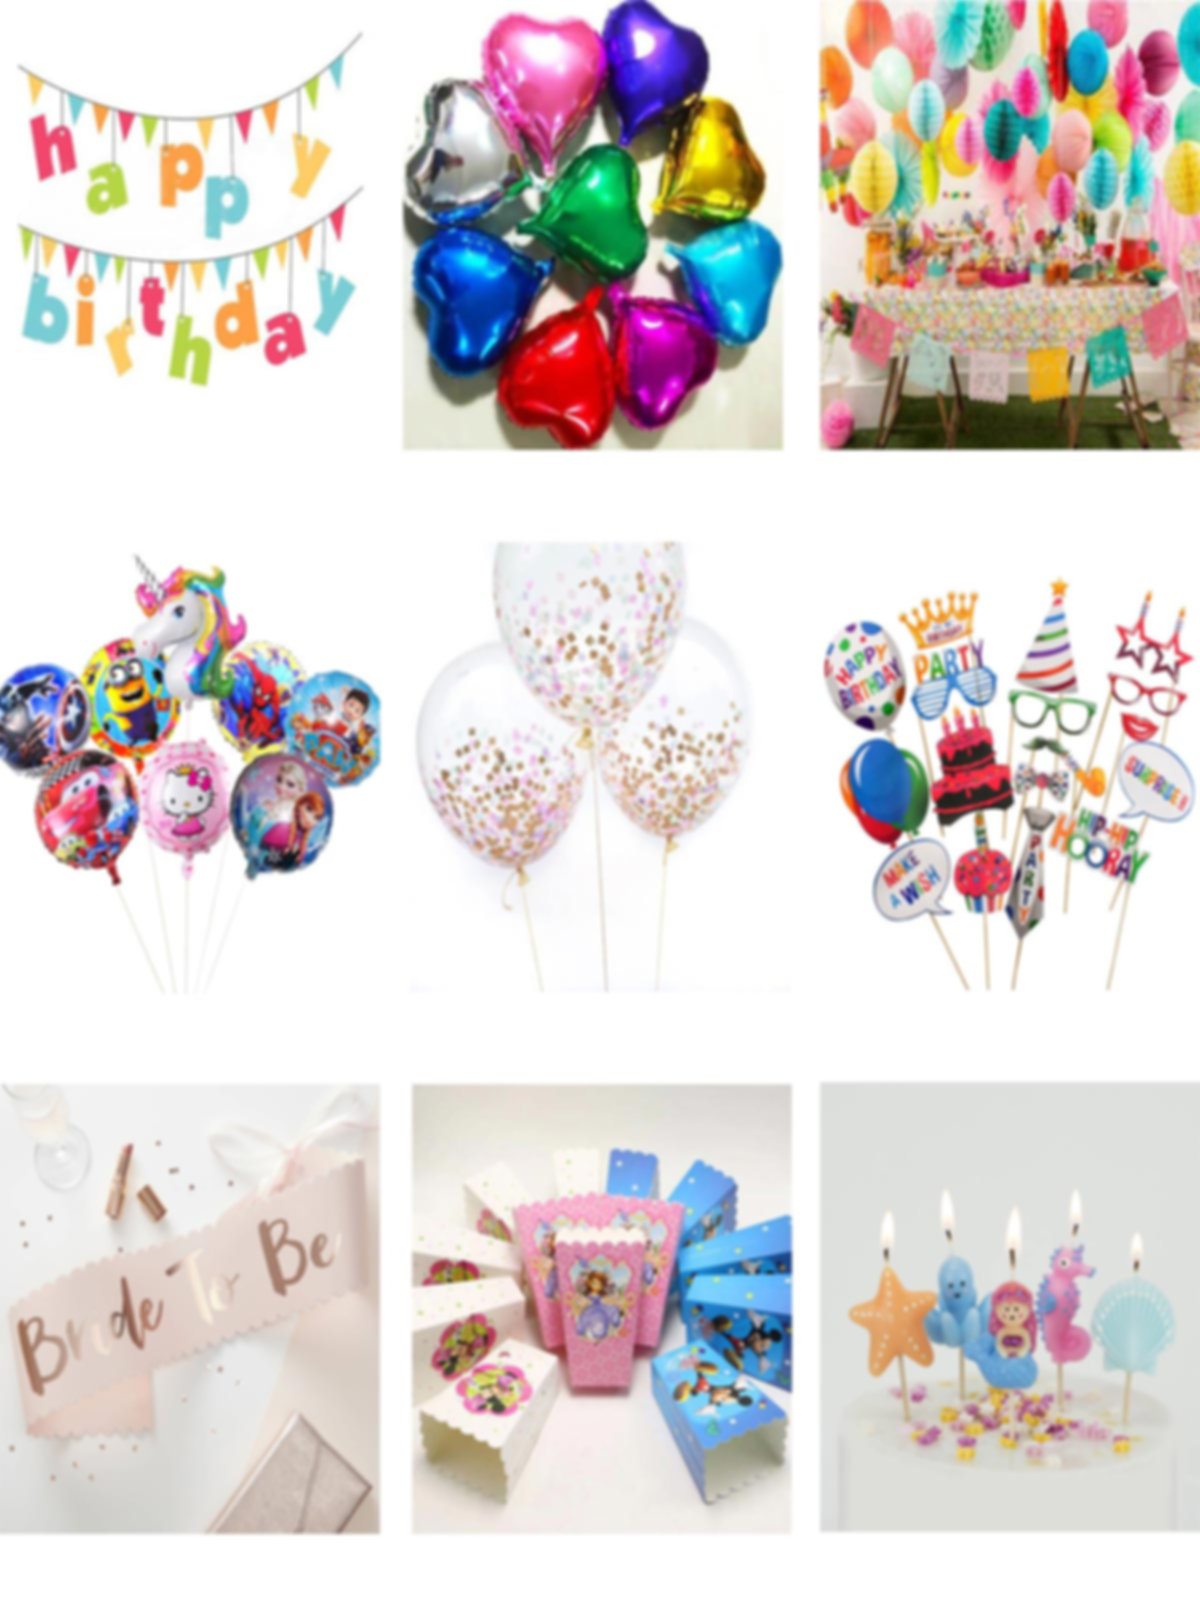 Birthday Supplies, Paty Items, Banners, Foil Balloons, Hanging decorations, Theme Foi Balloons, Phot Pops, Sashes, Favor Boxes and Bags, Candles and Fairy lights